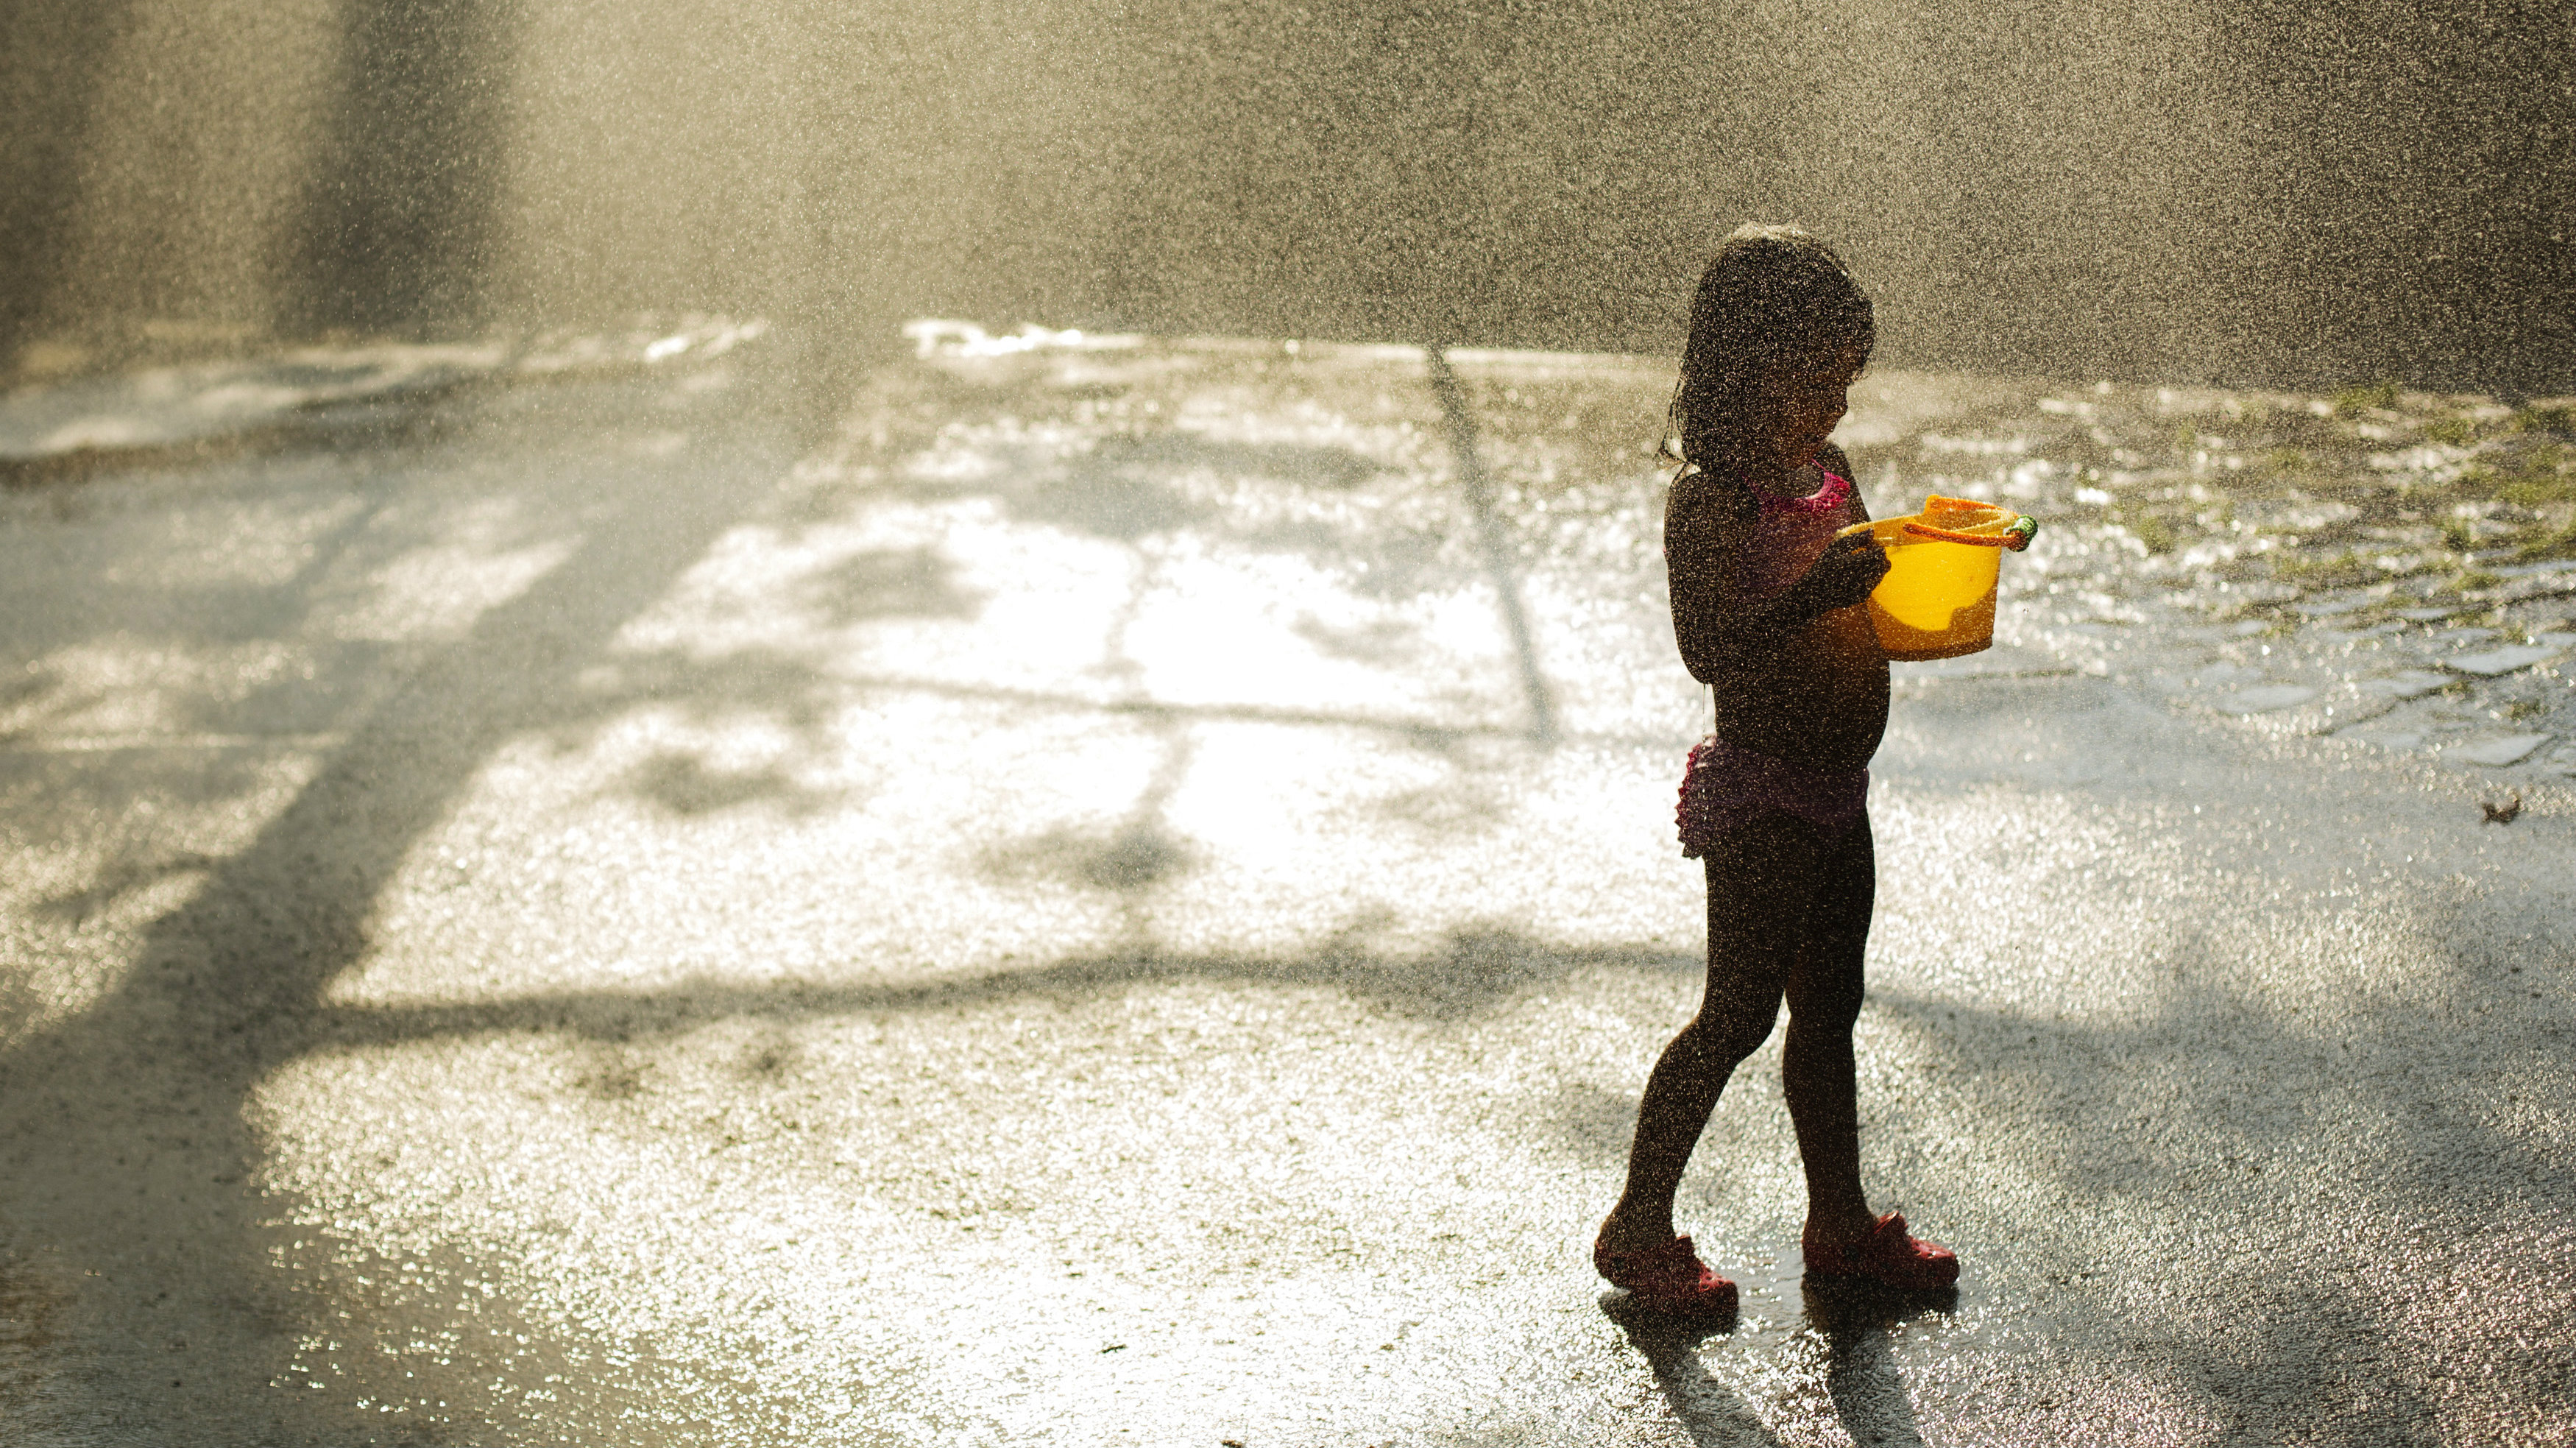 A girl plays as she cools off in a sprinkler system installed inside a playground during a hot summer day in New York, July 17, 2013.